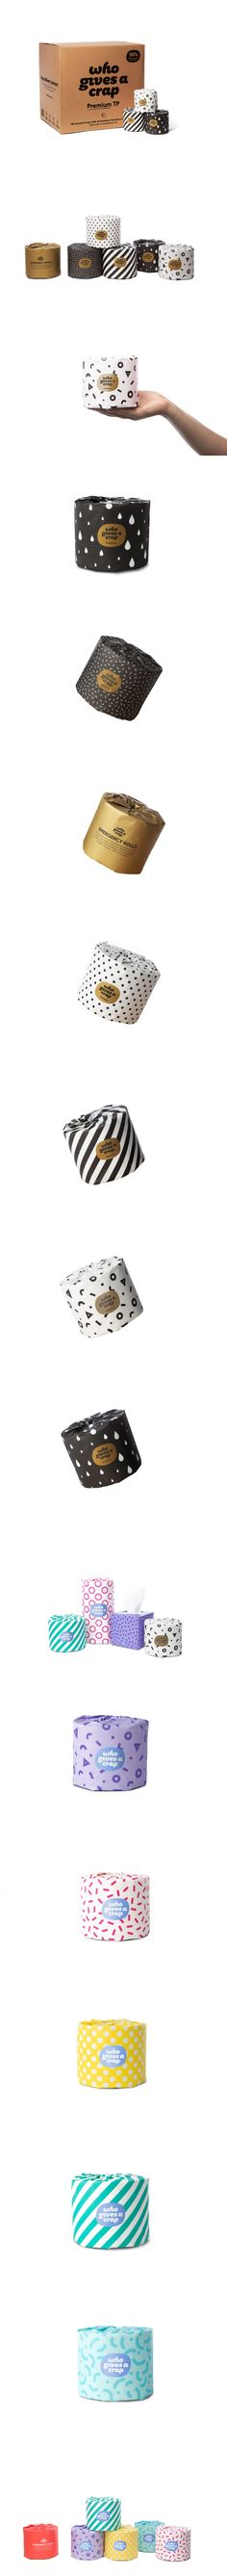 Who Gives a Crap Comes Out With New Packaging For Their Cheeky Toilet Paper — The Dieline | Packaging & Branding Design & Innovation News